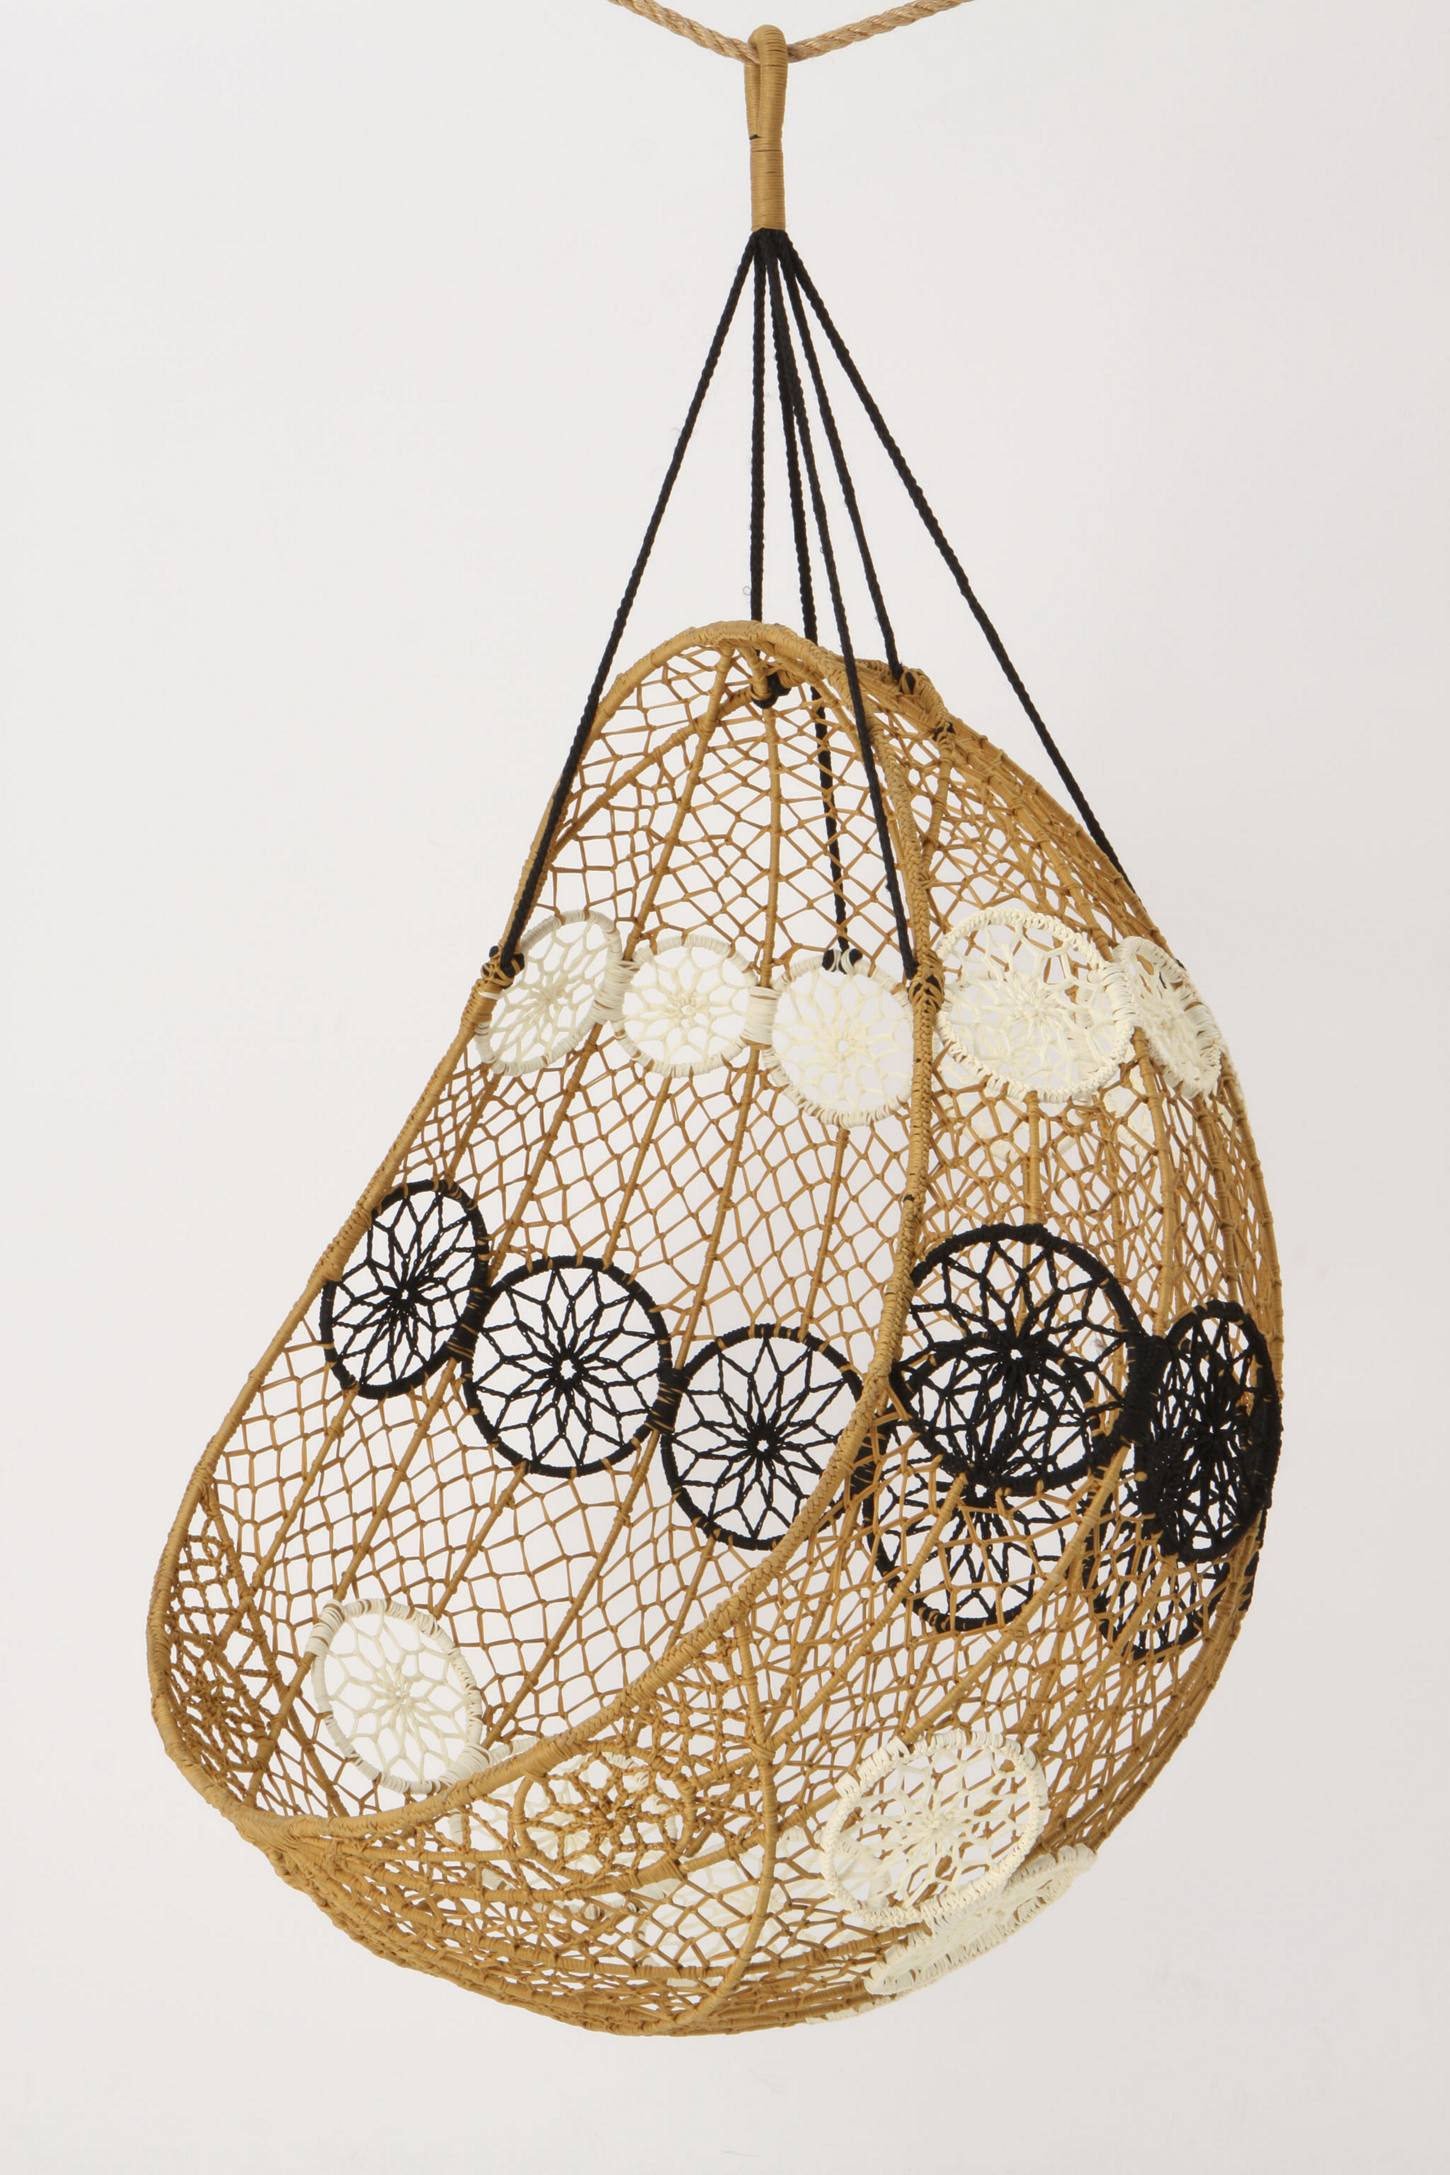 Slide View: 3: Knotted Melati Hanging Chair